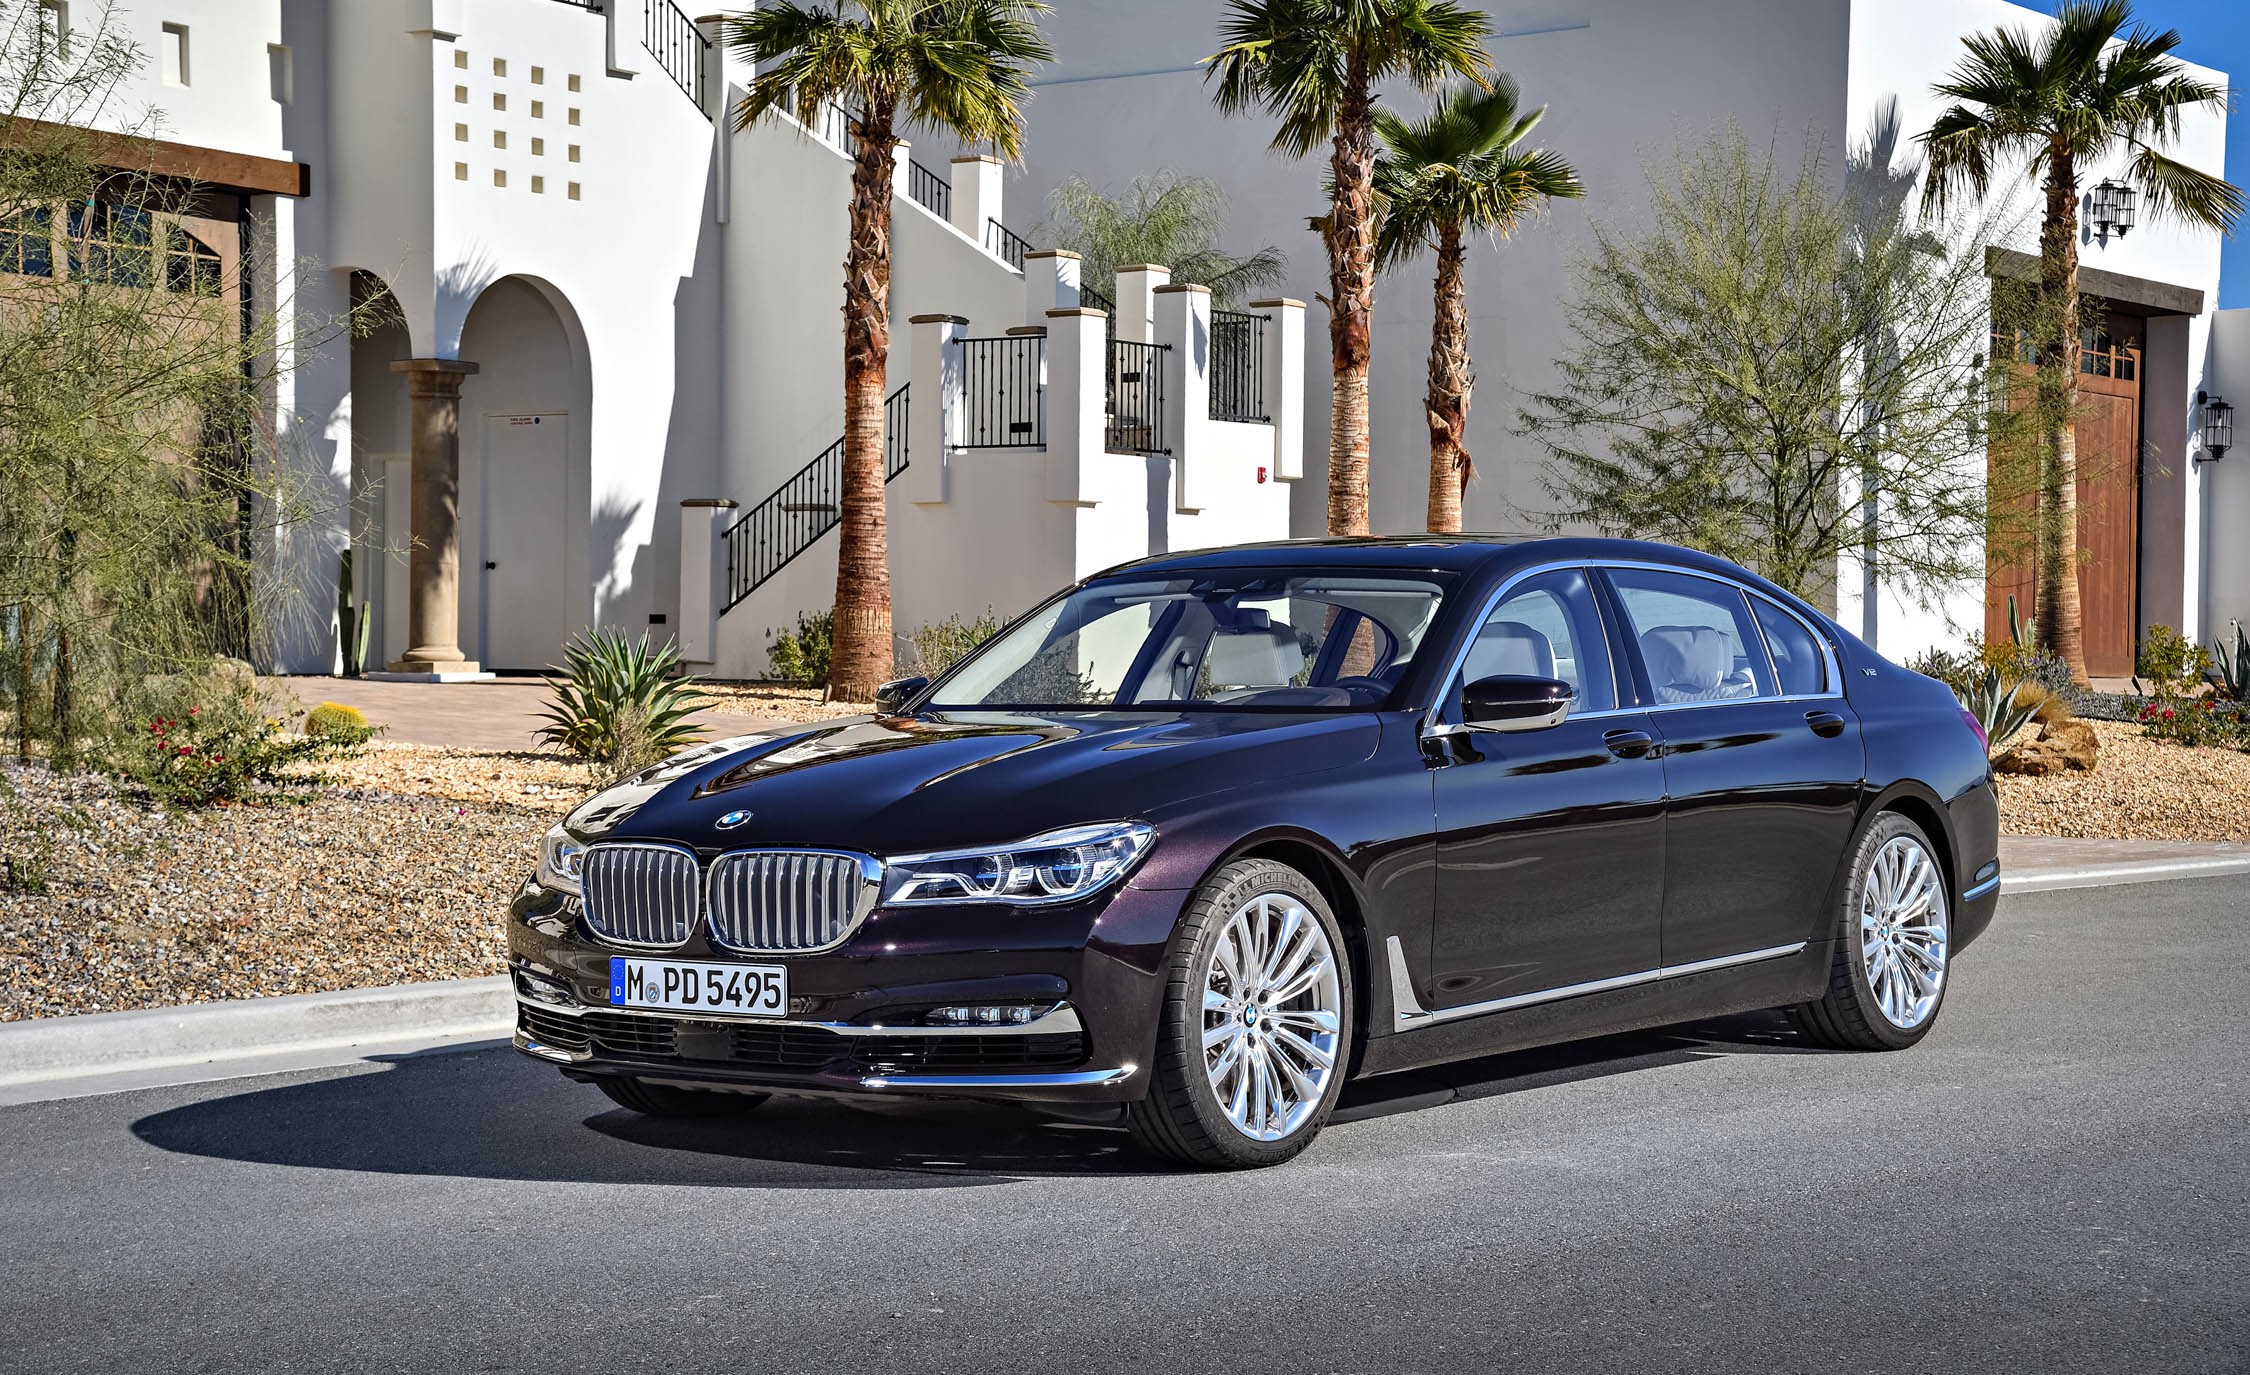 2017 BMW M760Li XDrive Excellence Exterior Front And Side (Photo 61 of 76)